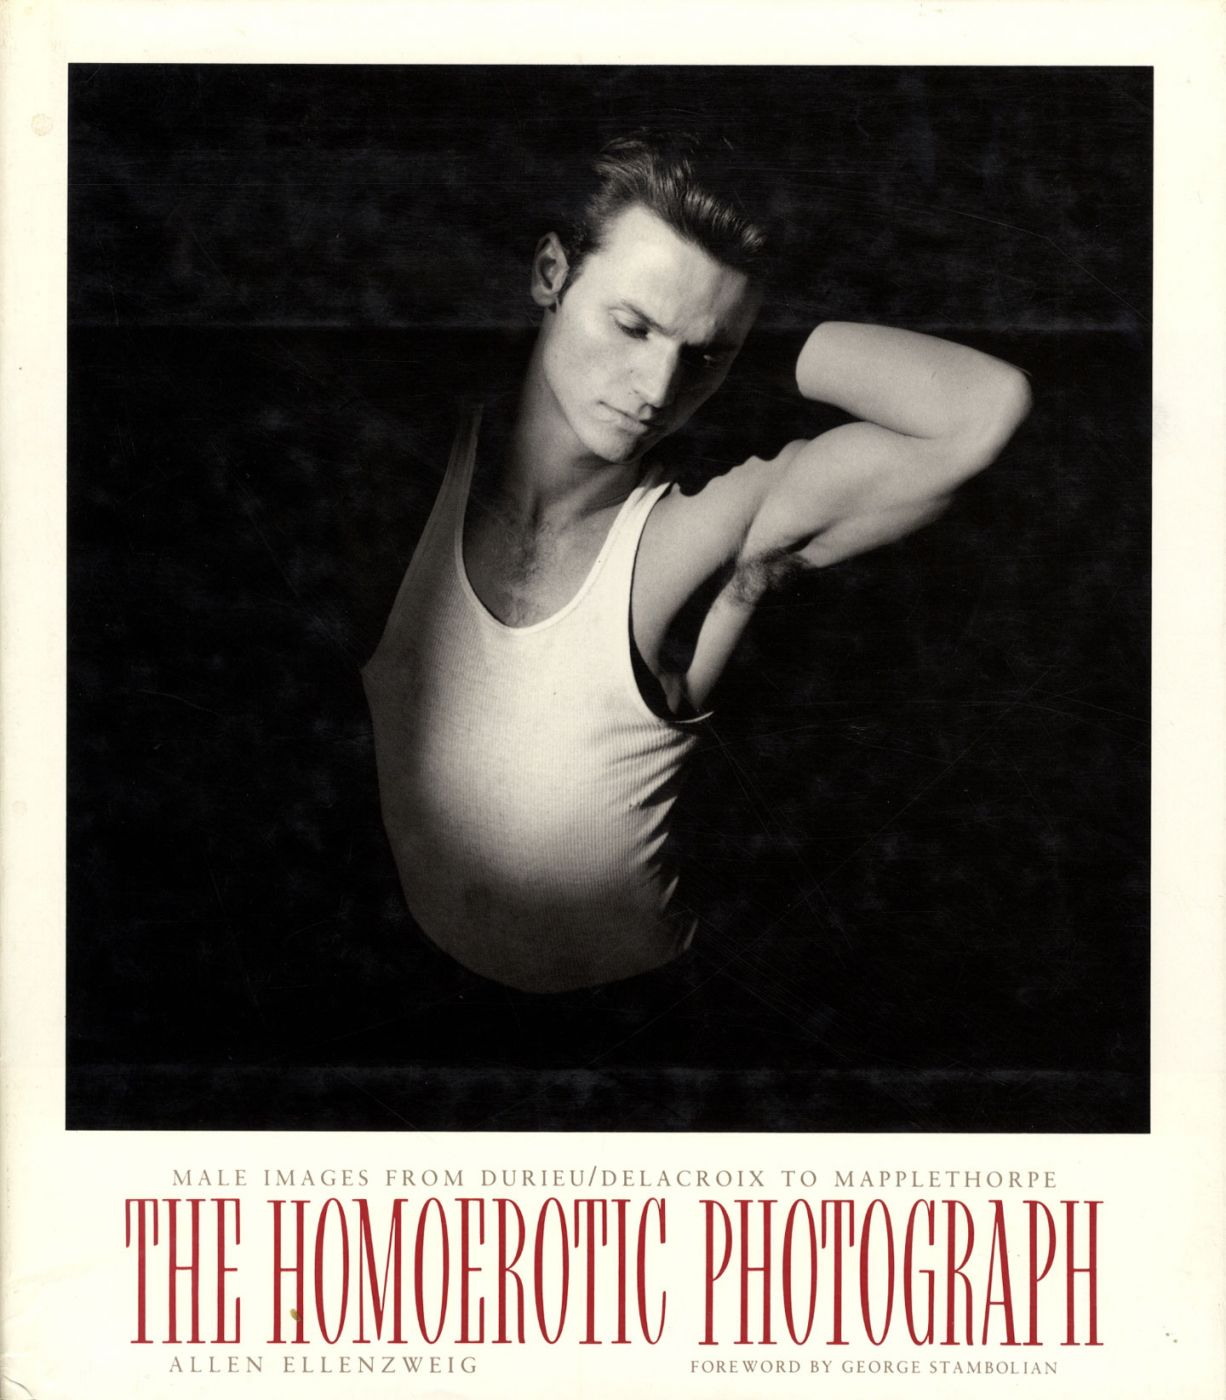 The Homoerotic Photograph: Male Images from Durieu/Délacroix to Mapplethorpe